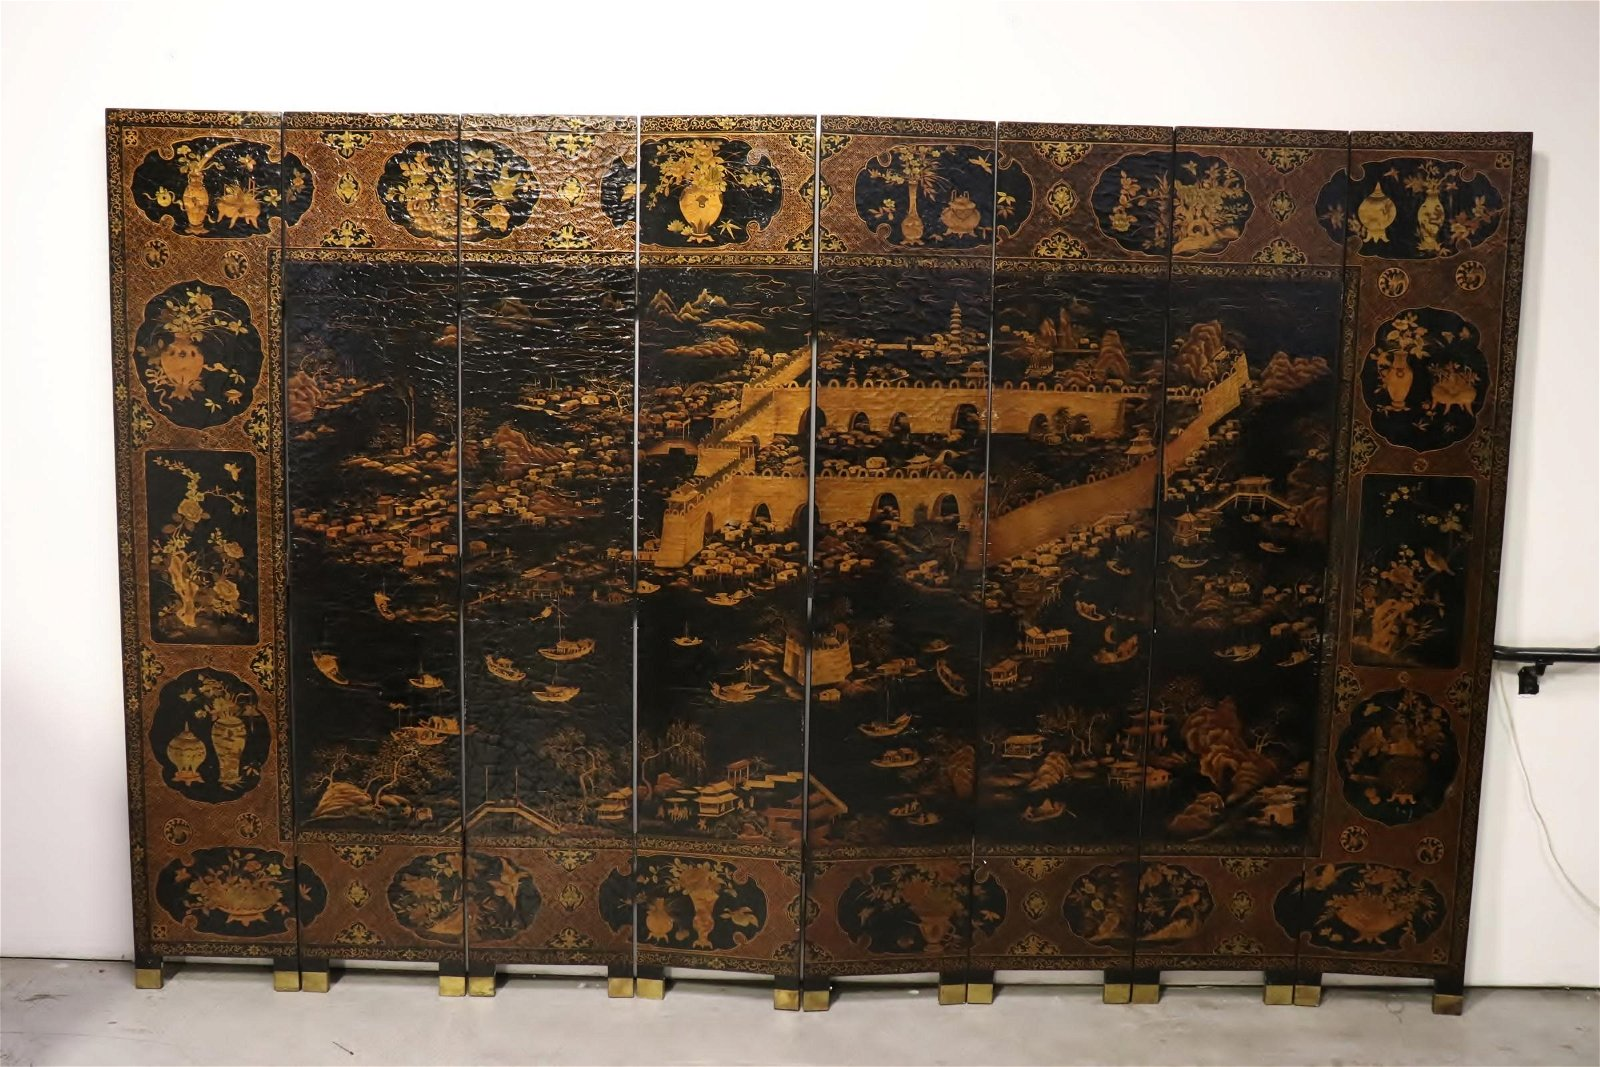 A large Chinese 8-panel coromandel room divider